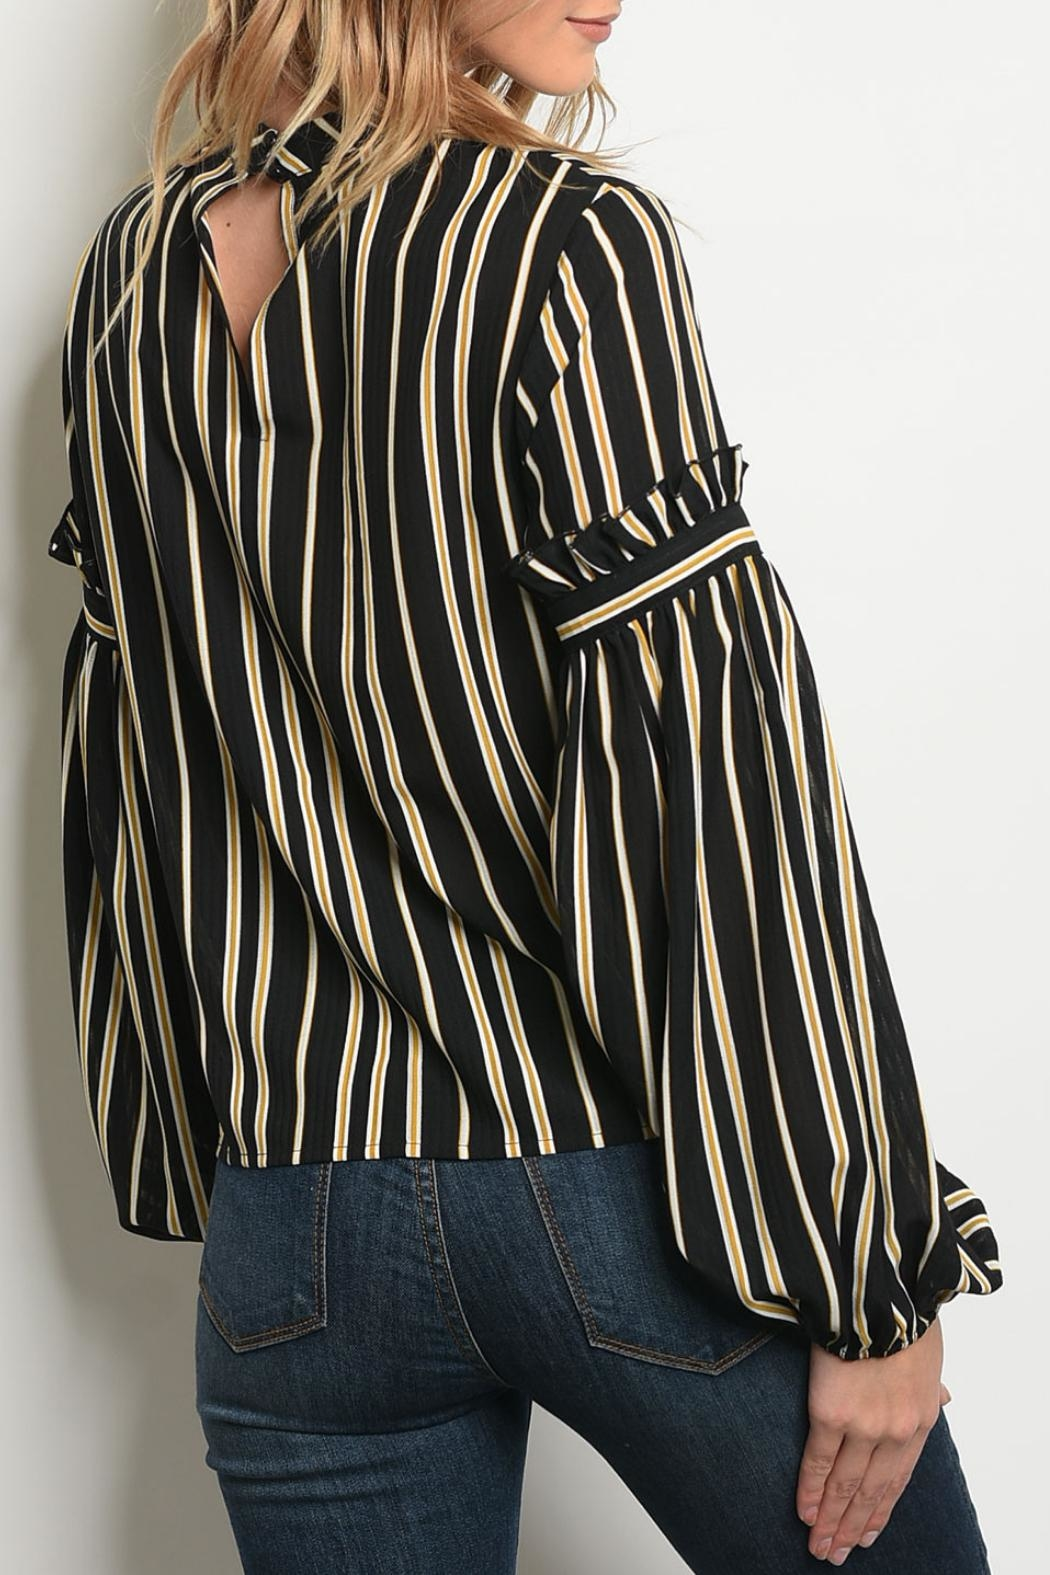 Le Lis Mustard Striped Top - Front Full Image